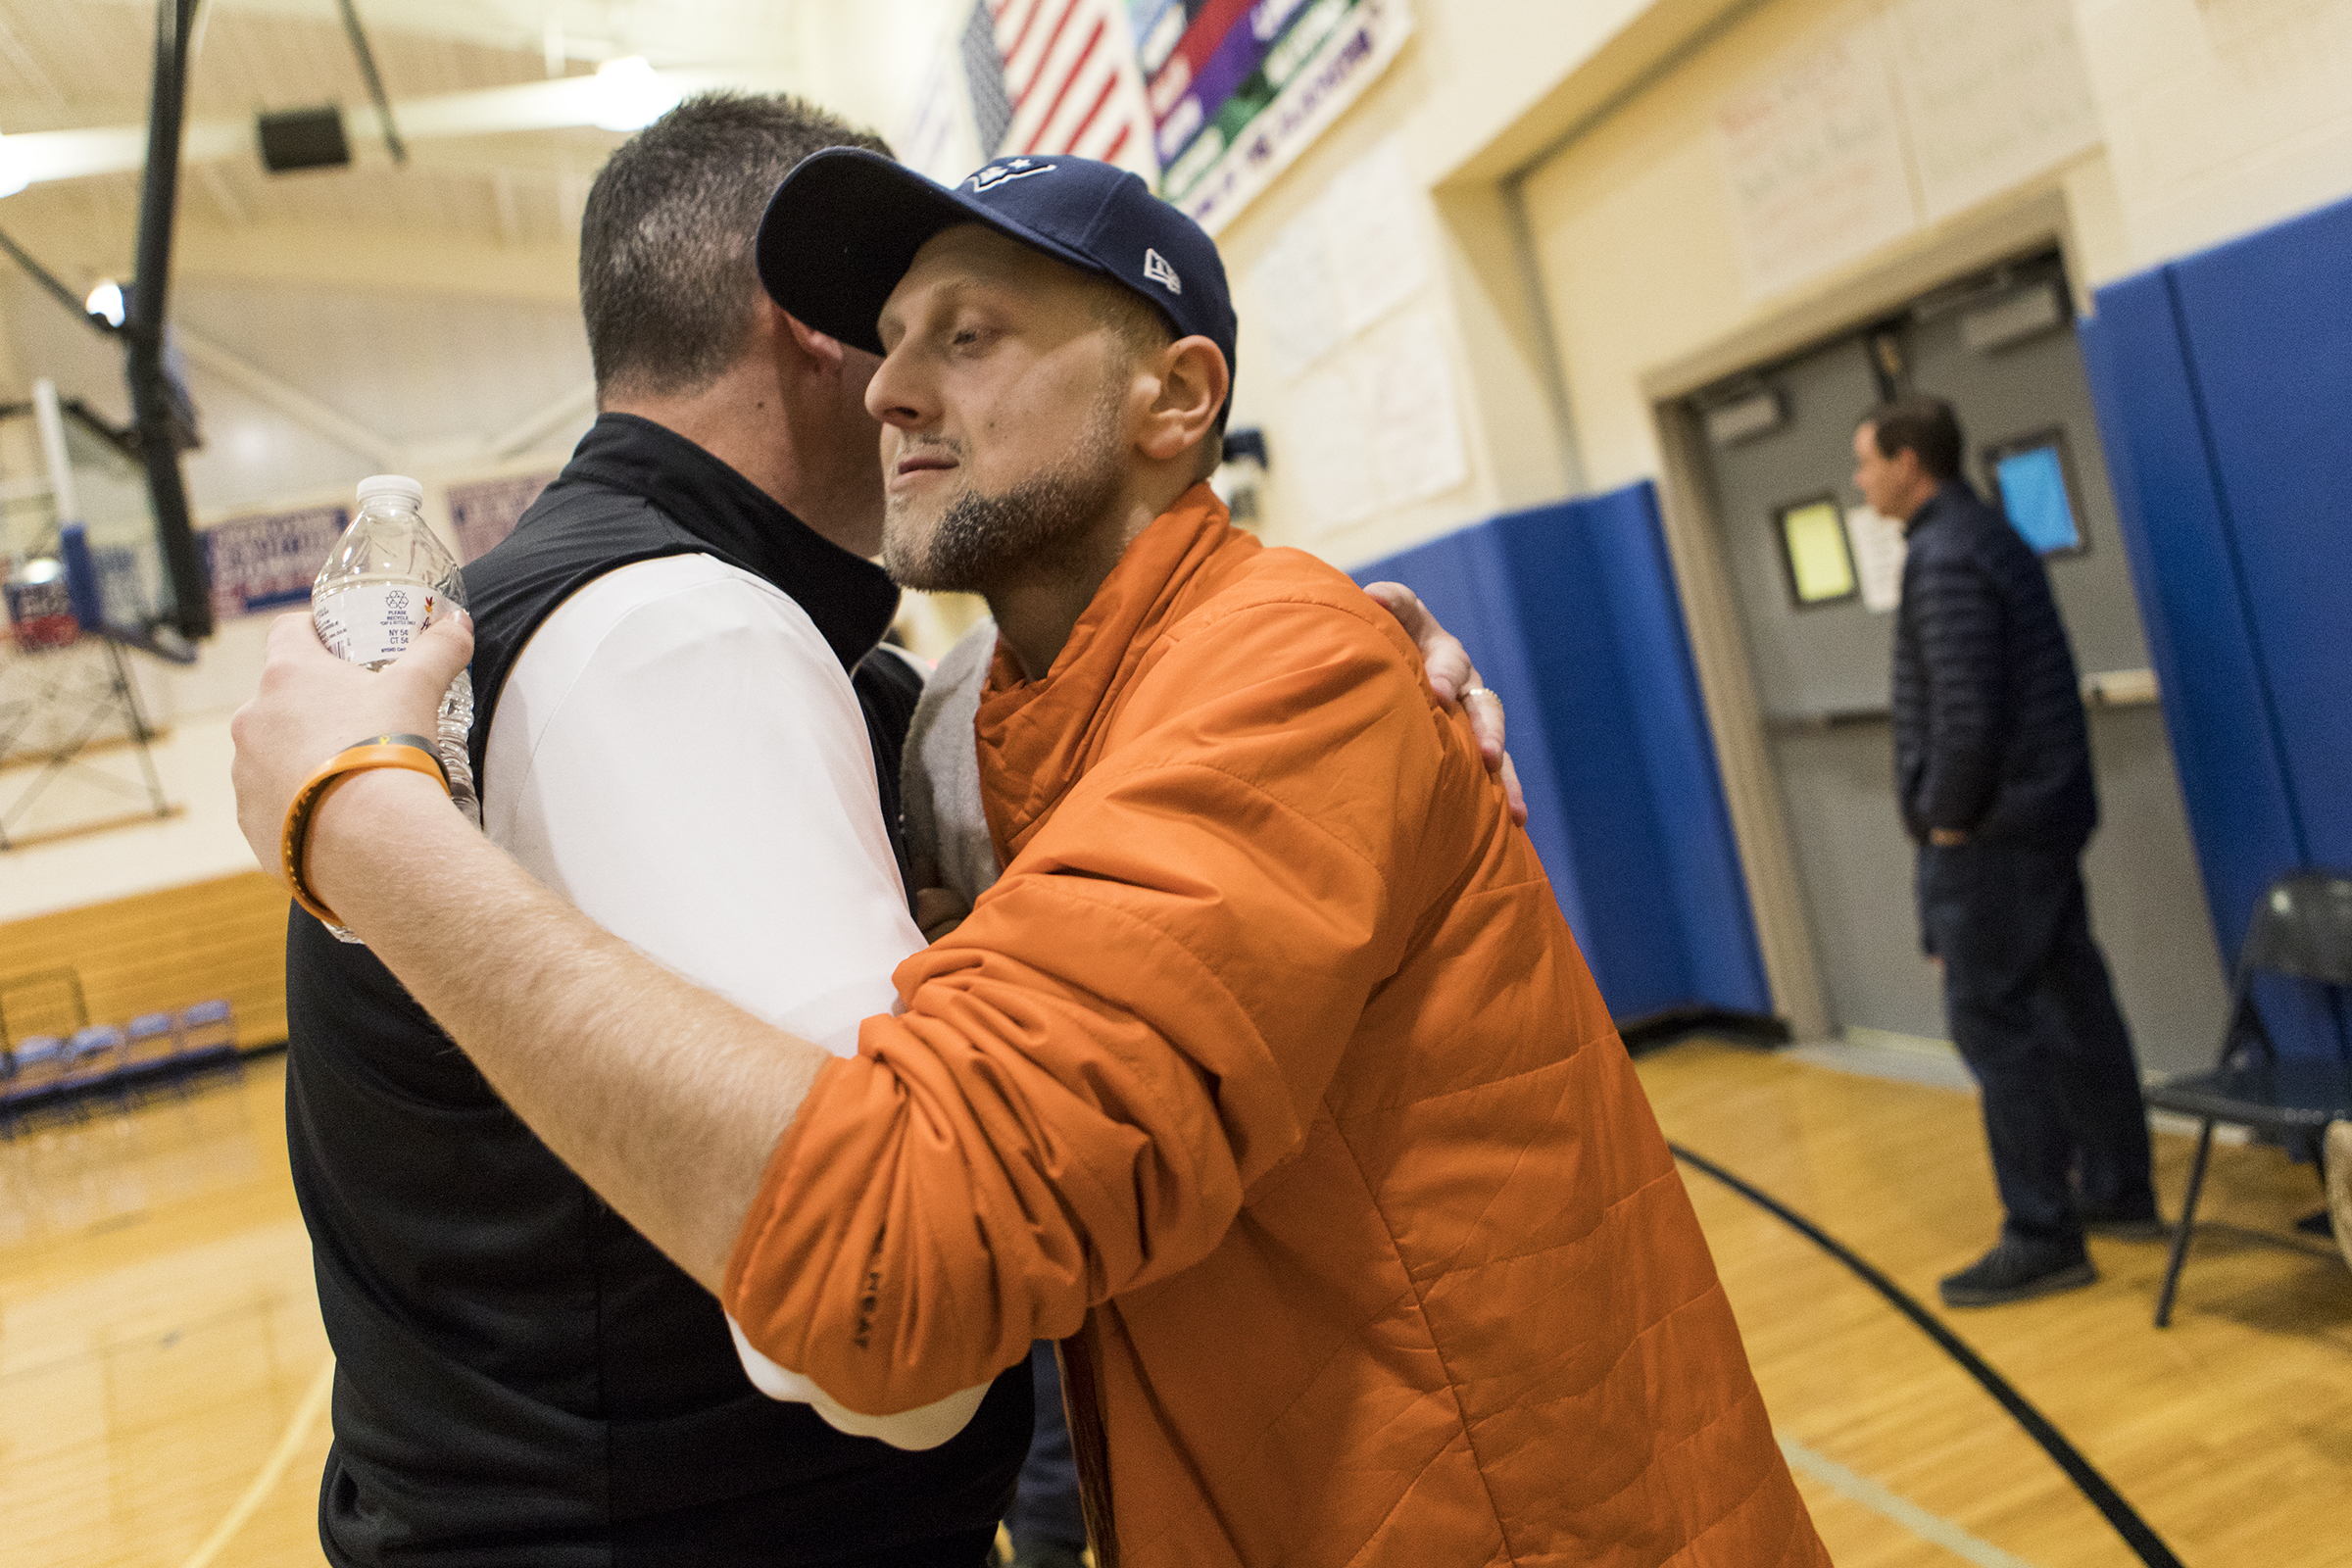 Jake Silver receives a hug during a basketball game at Ashland High School on January 18, 2019. Silver is hoping to cross items off of his bucket list, which includes seeing the Super Bowl, before his fight with osteosarcoma comes to an end.